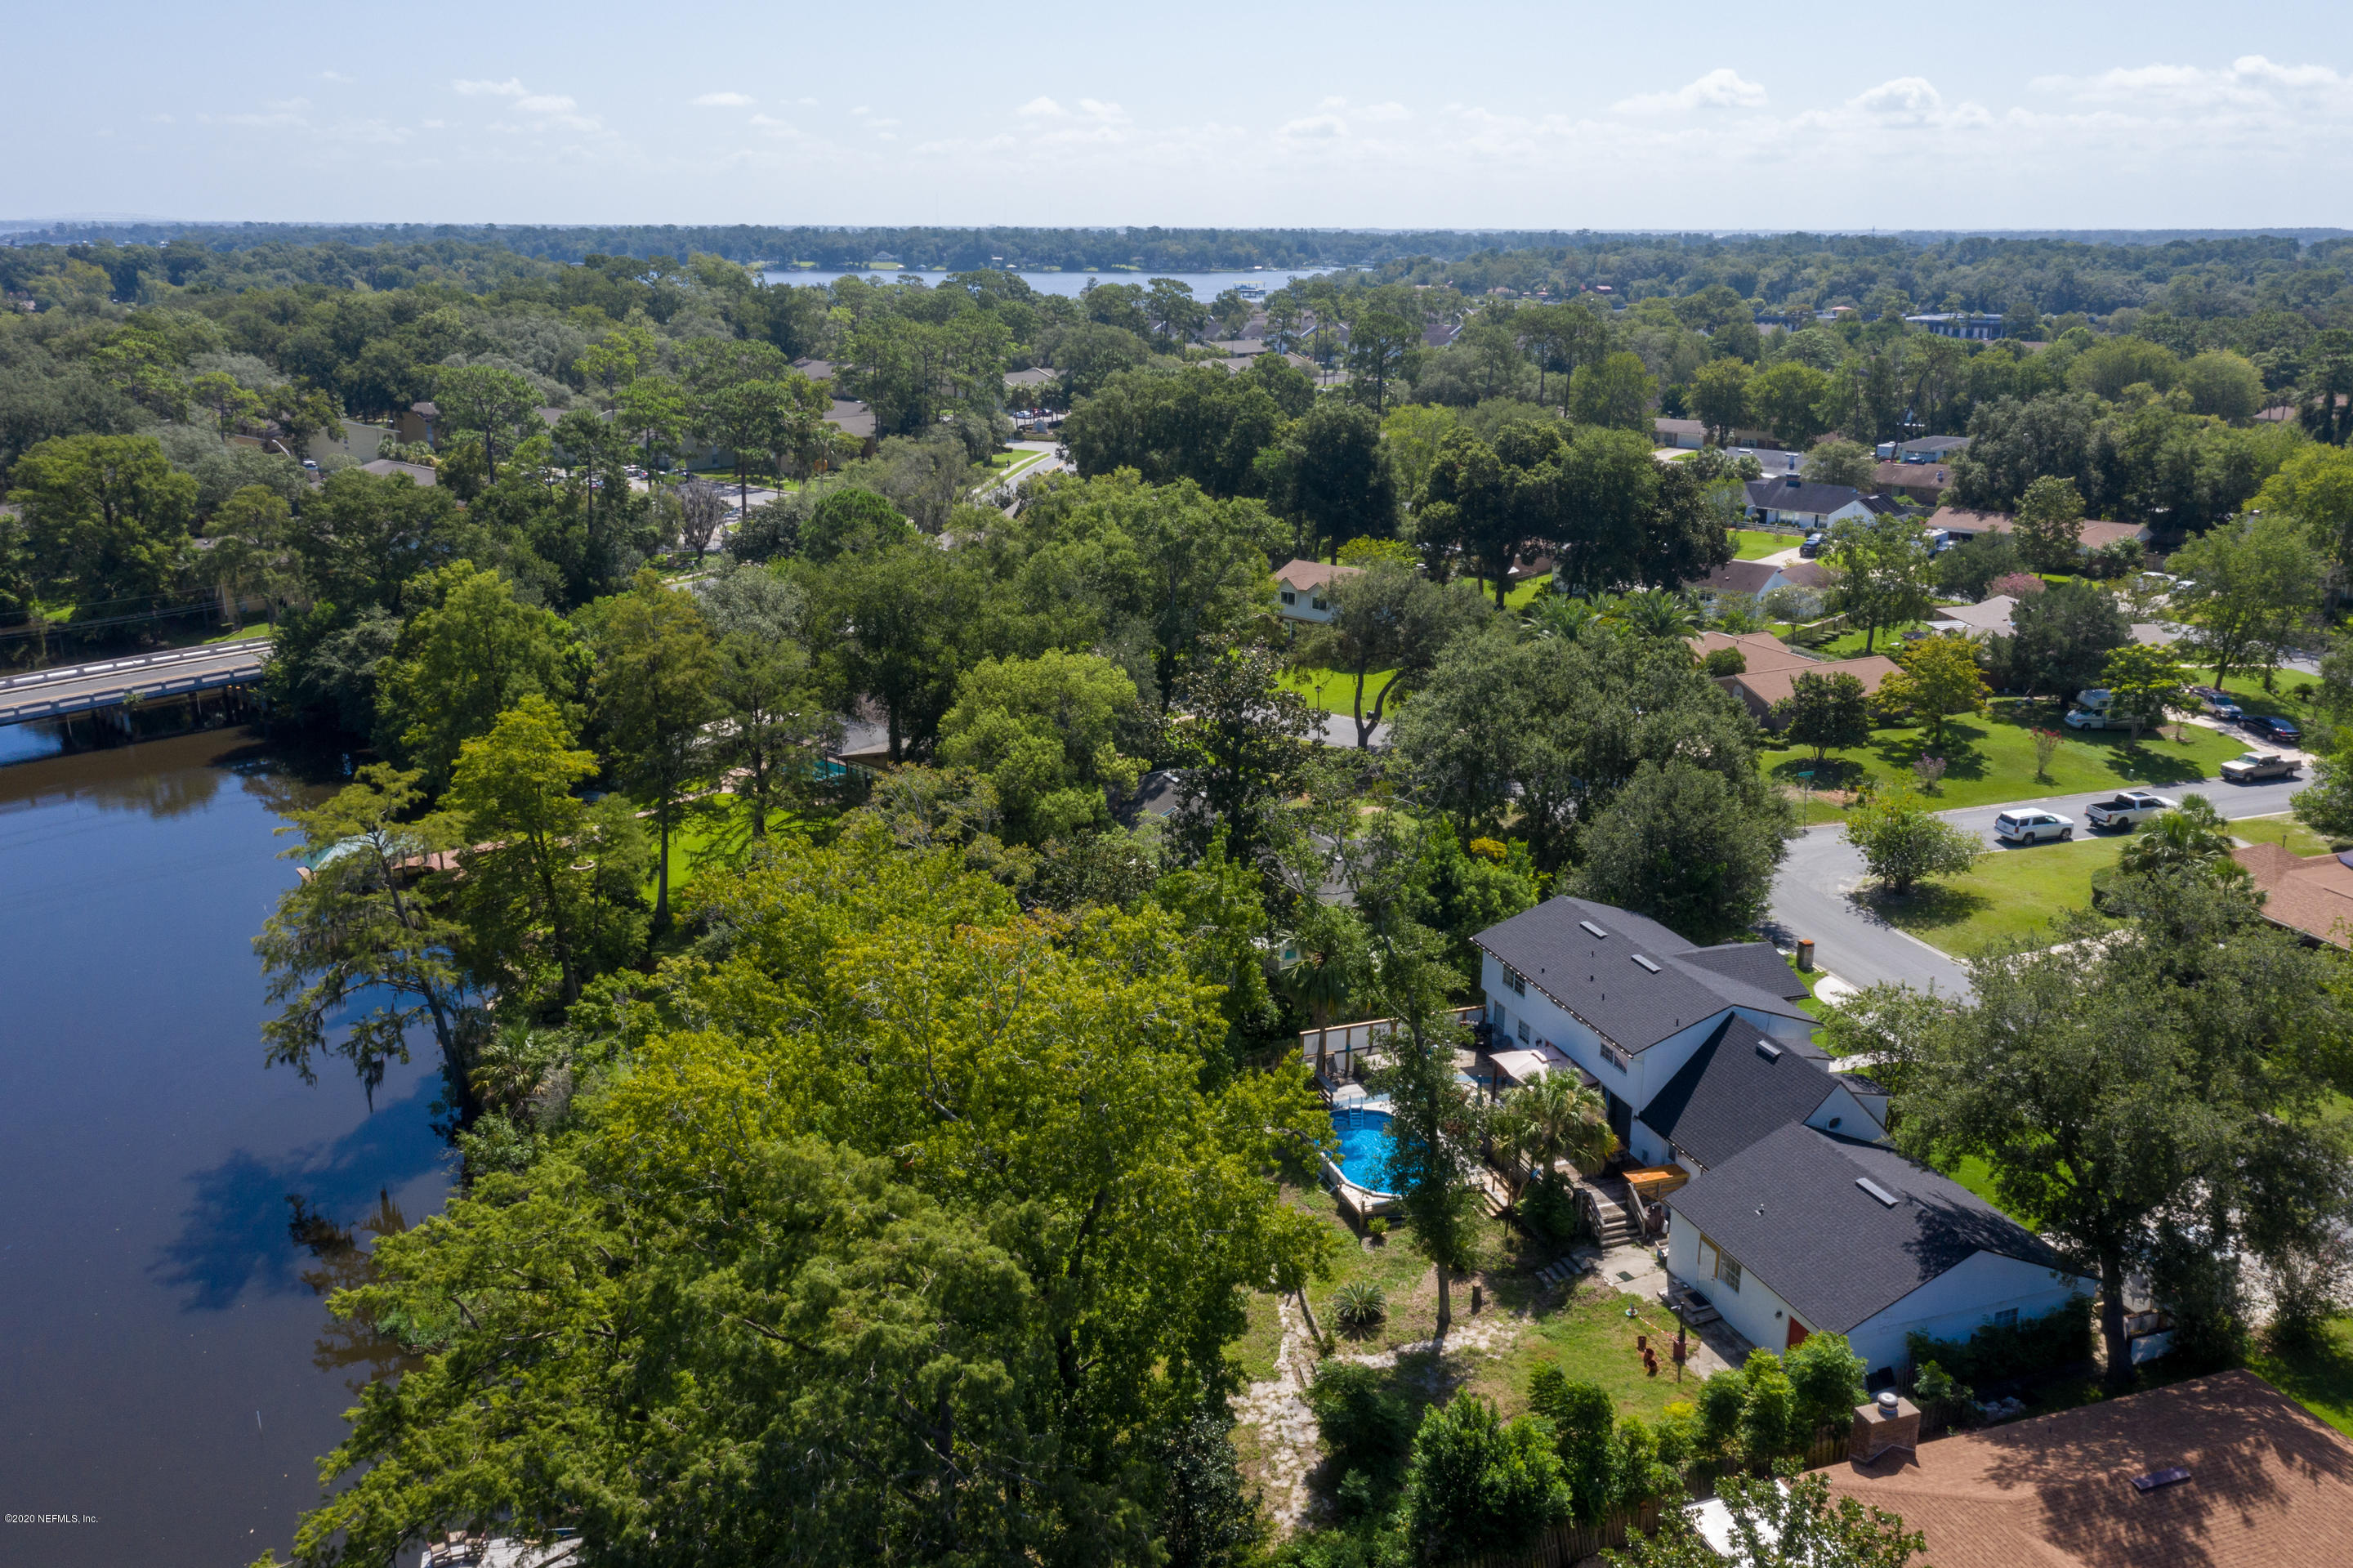 4248 BUCK POINT, JACKSONVILLE, FLORIDA 32210, 4 Bedrooms Bedrooms, ,4 BathroomsBathrooms,Residential,For sale,BUCK POINT,1064943